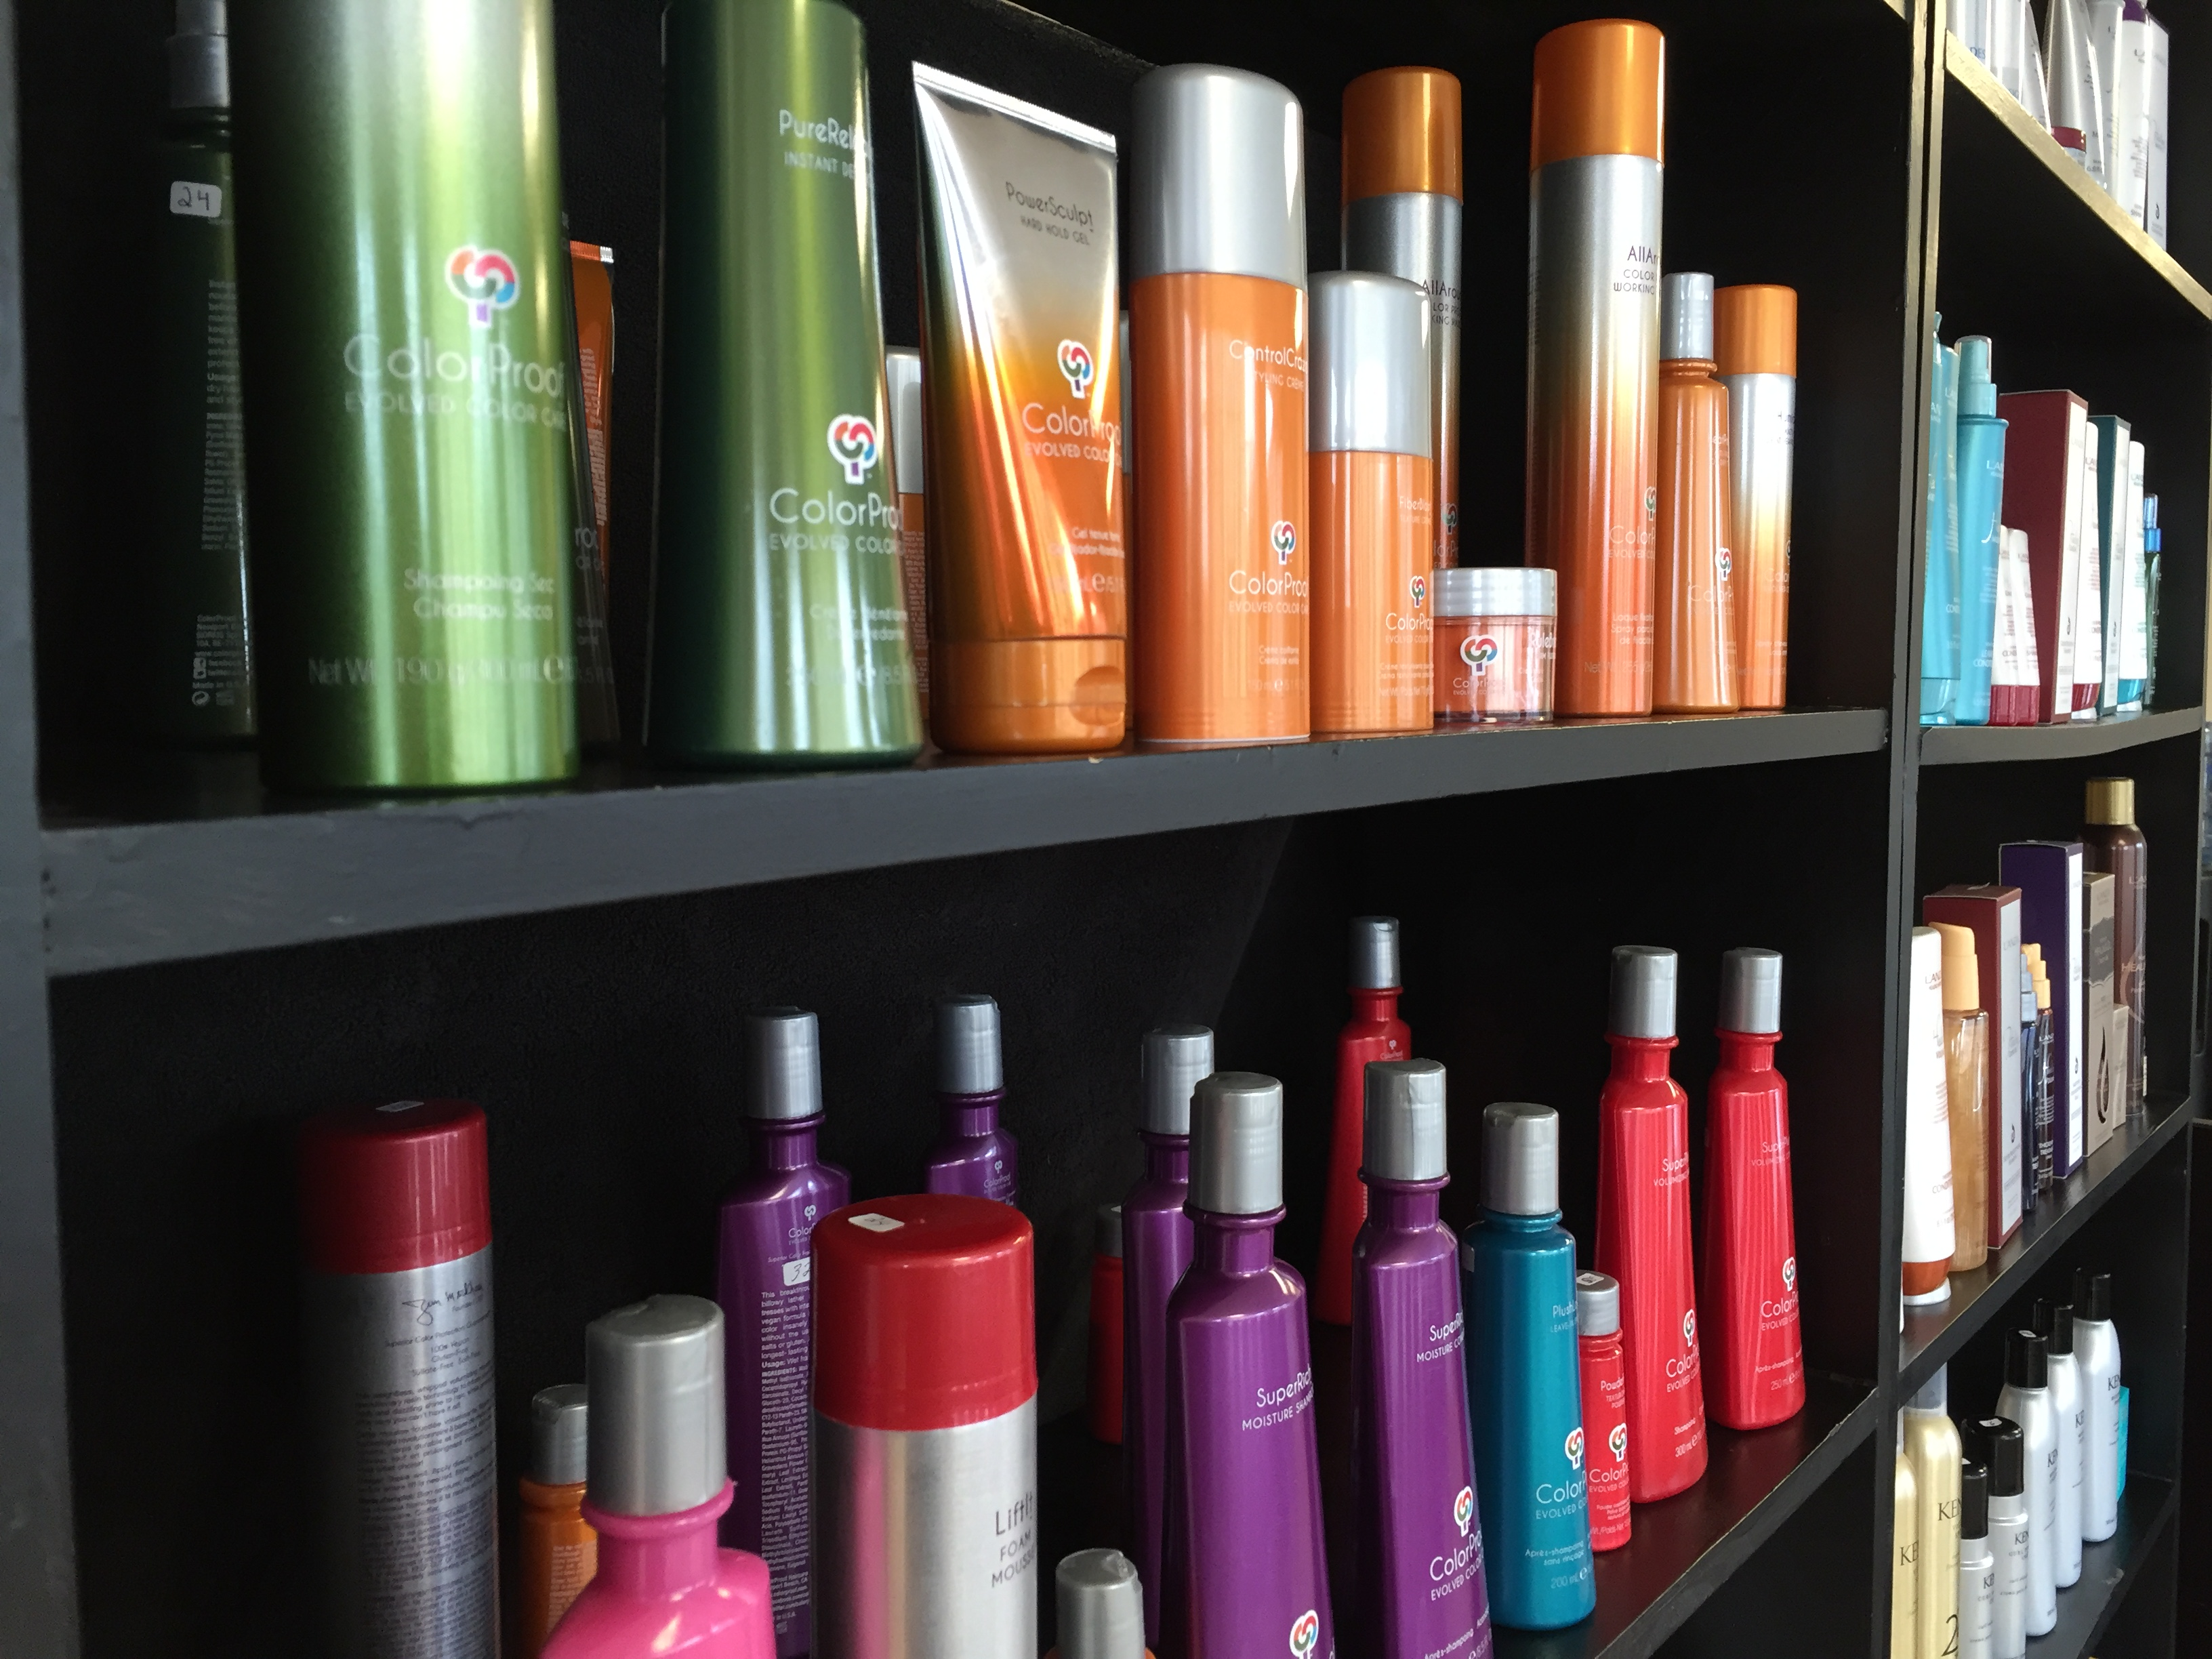 ColorProof Haircare